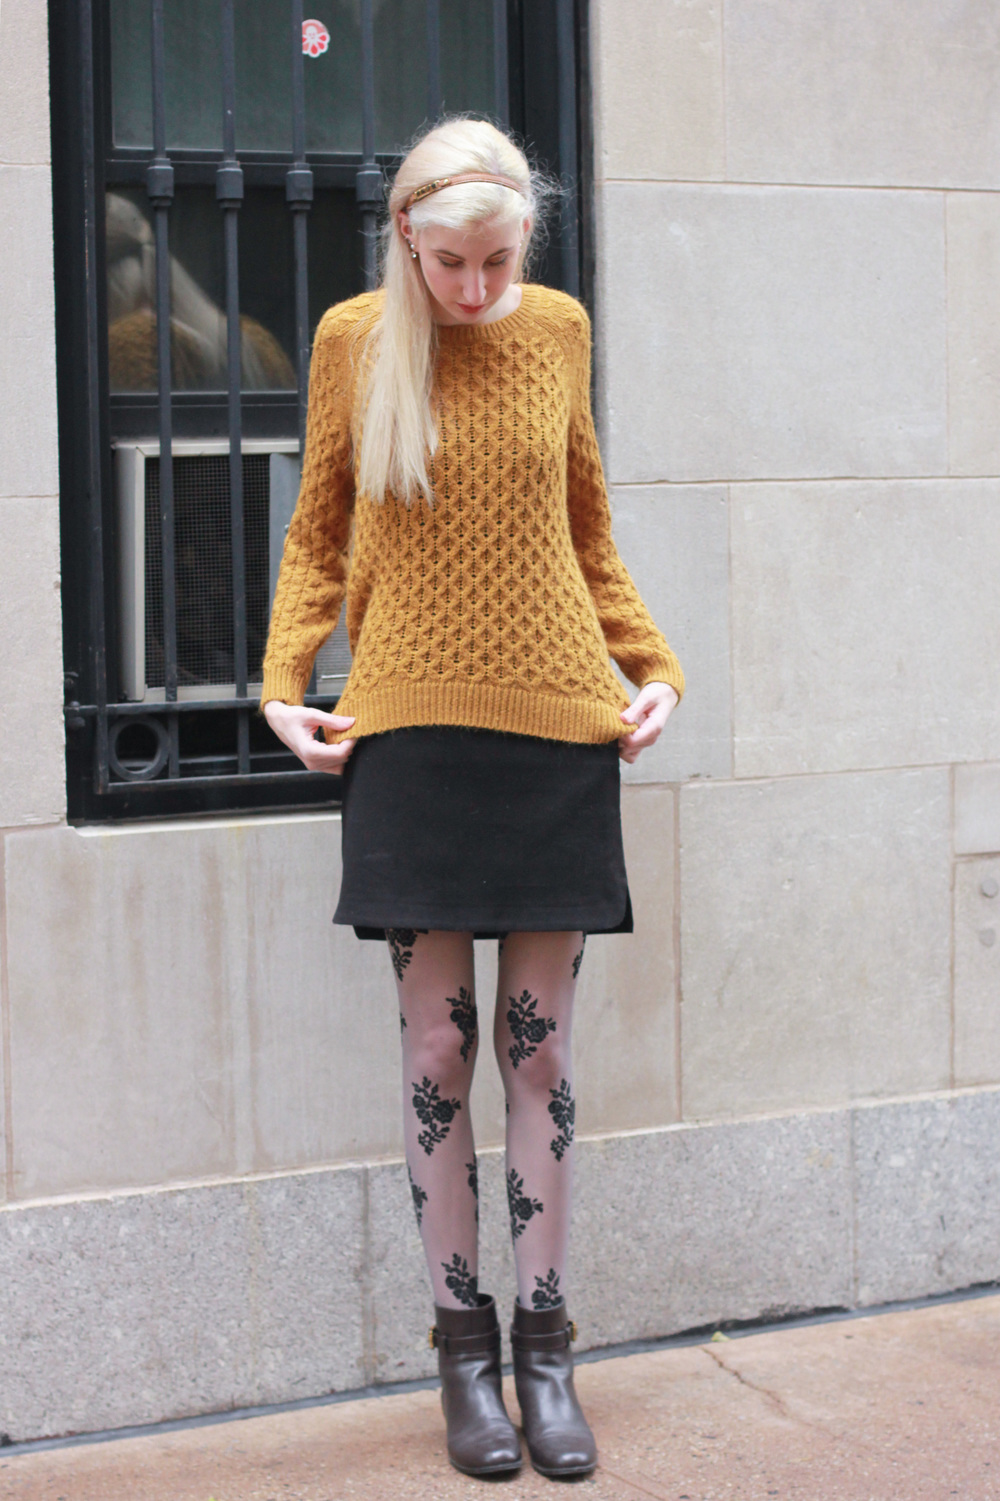 Sweater - H&M (similar) / Skirt - LOFT (similar) / Tights - Forever21 (similar) / Boots - TJ Maxx (similar) / Headband - Henri Bendel (similar) /